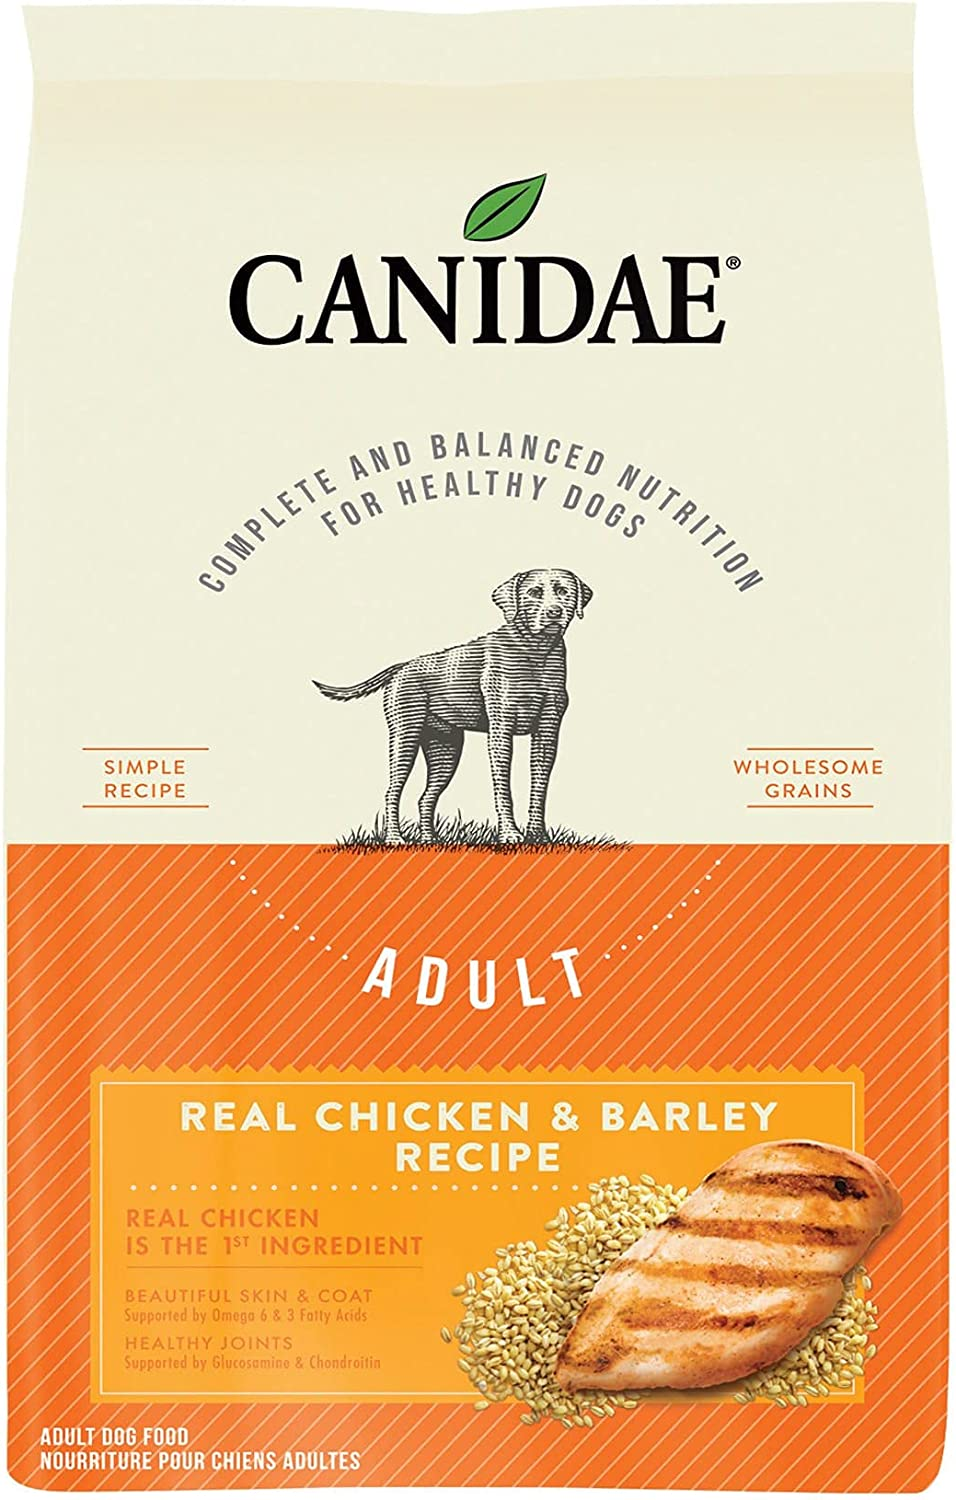 CANIDAE Real Special price for a limited time Chicken Arlington Mall Barley Dry Dog LB Food Bag LBS 25